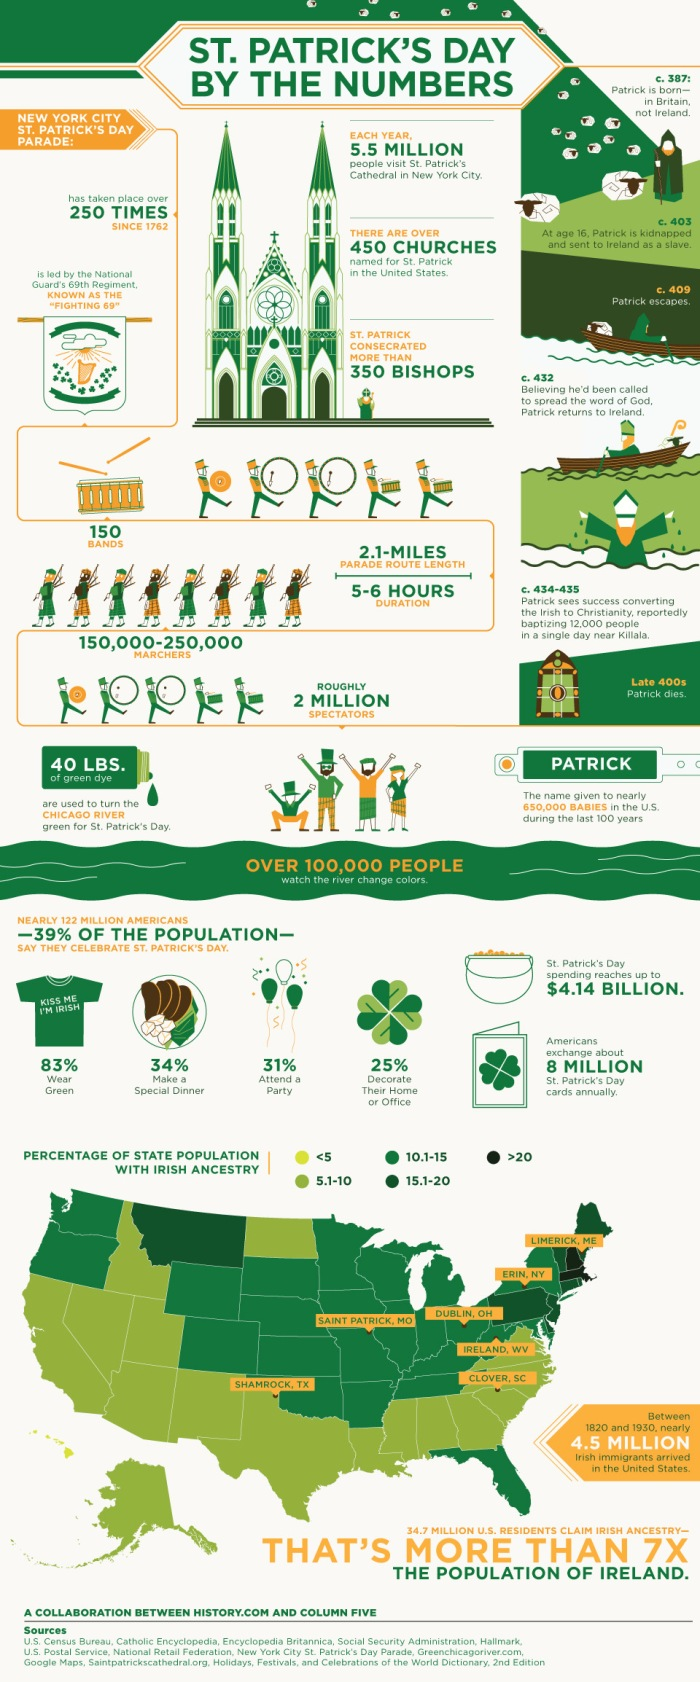 St. Patrick's Day By the Numbers, by the History Channel